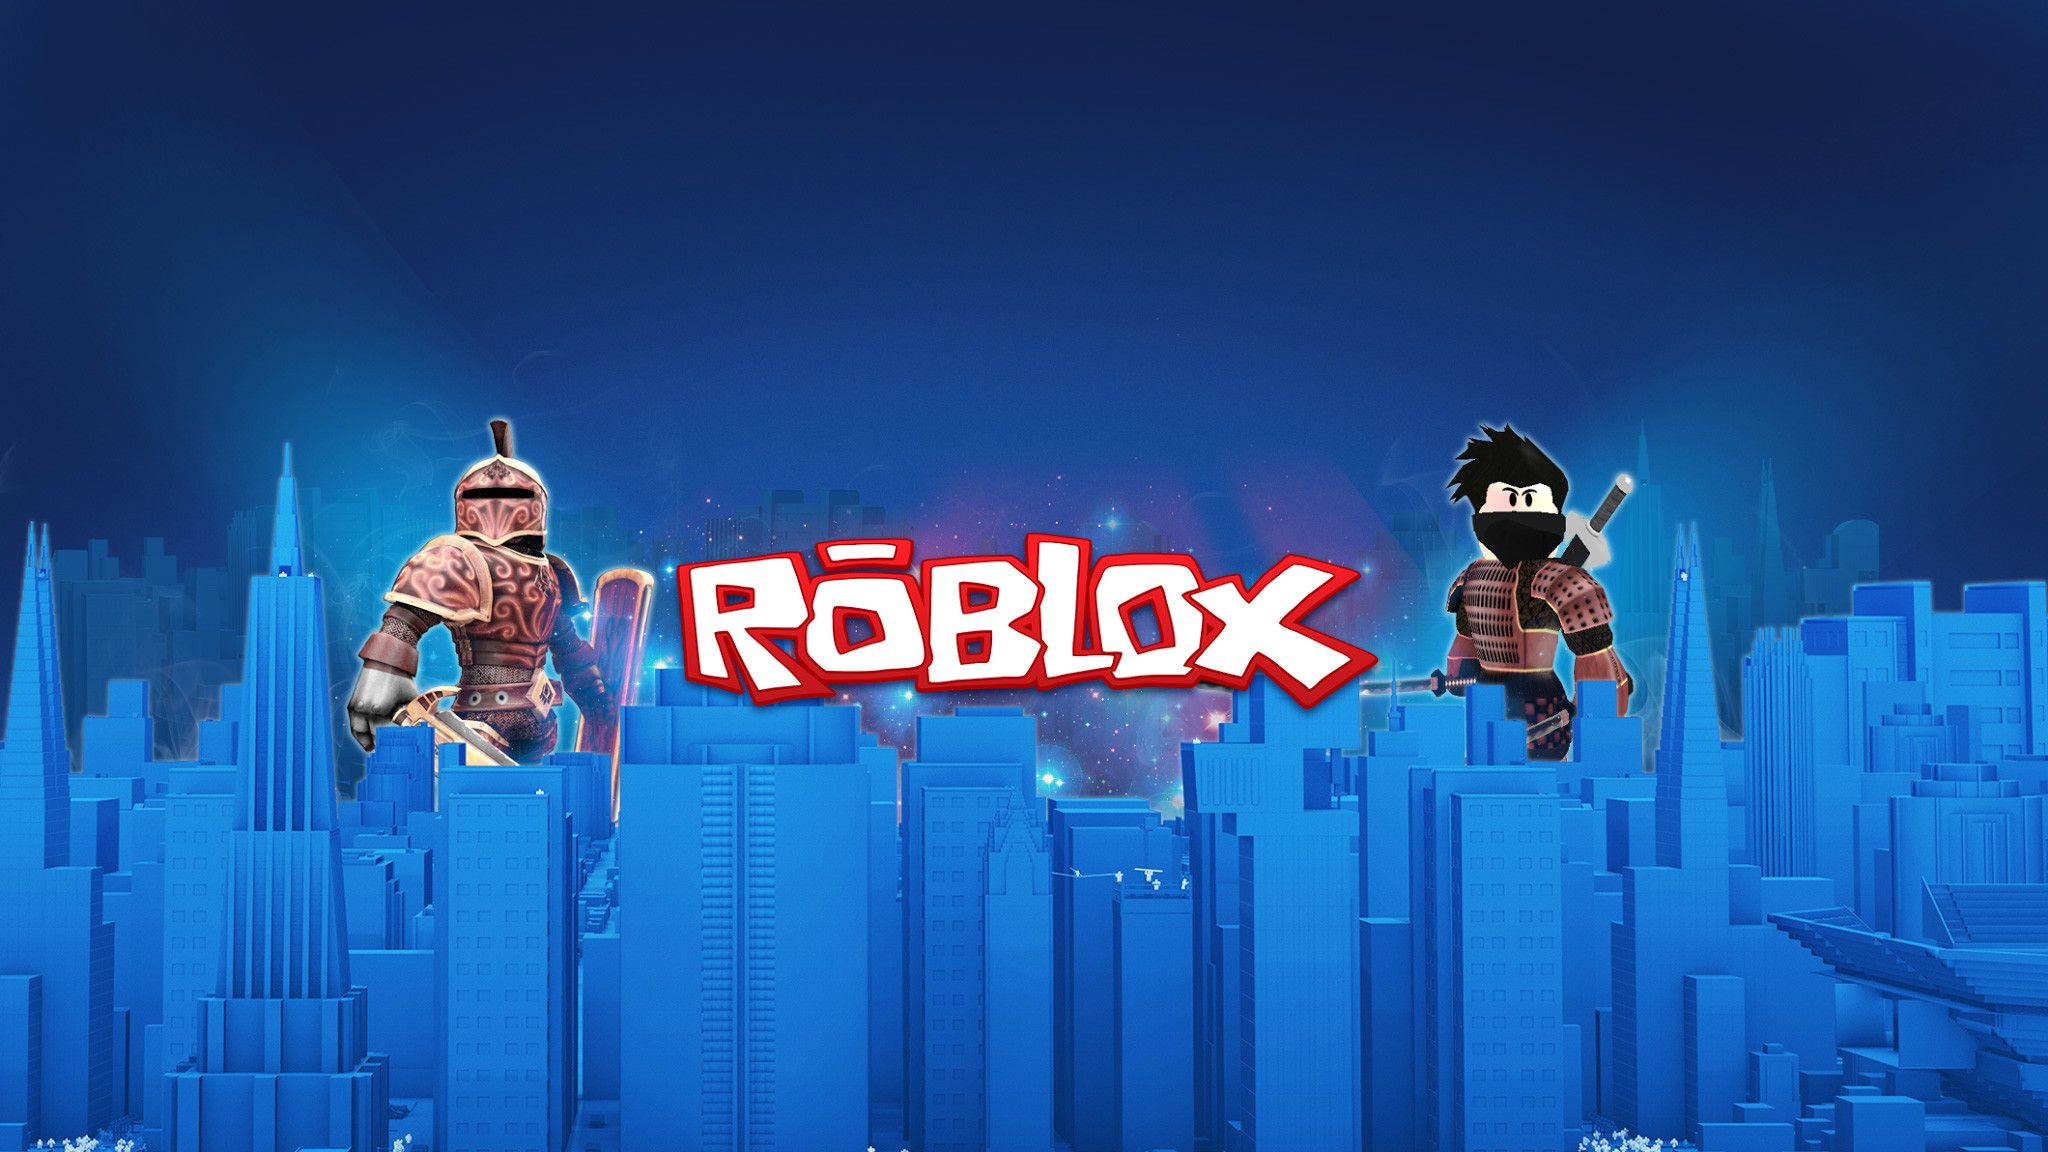 2048x1152 49 Make A ROBLOX Wallpaper, Top Ranked Make A